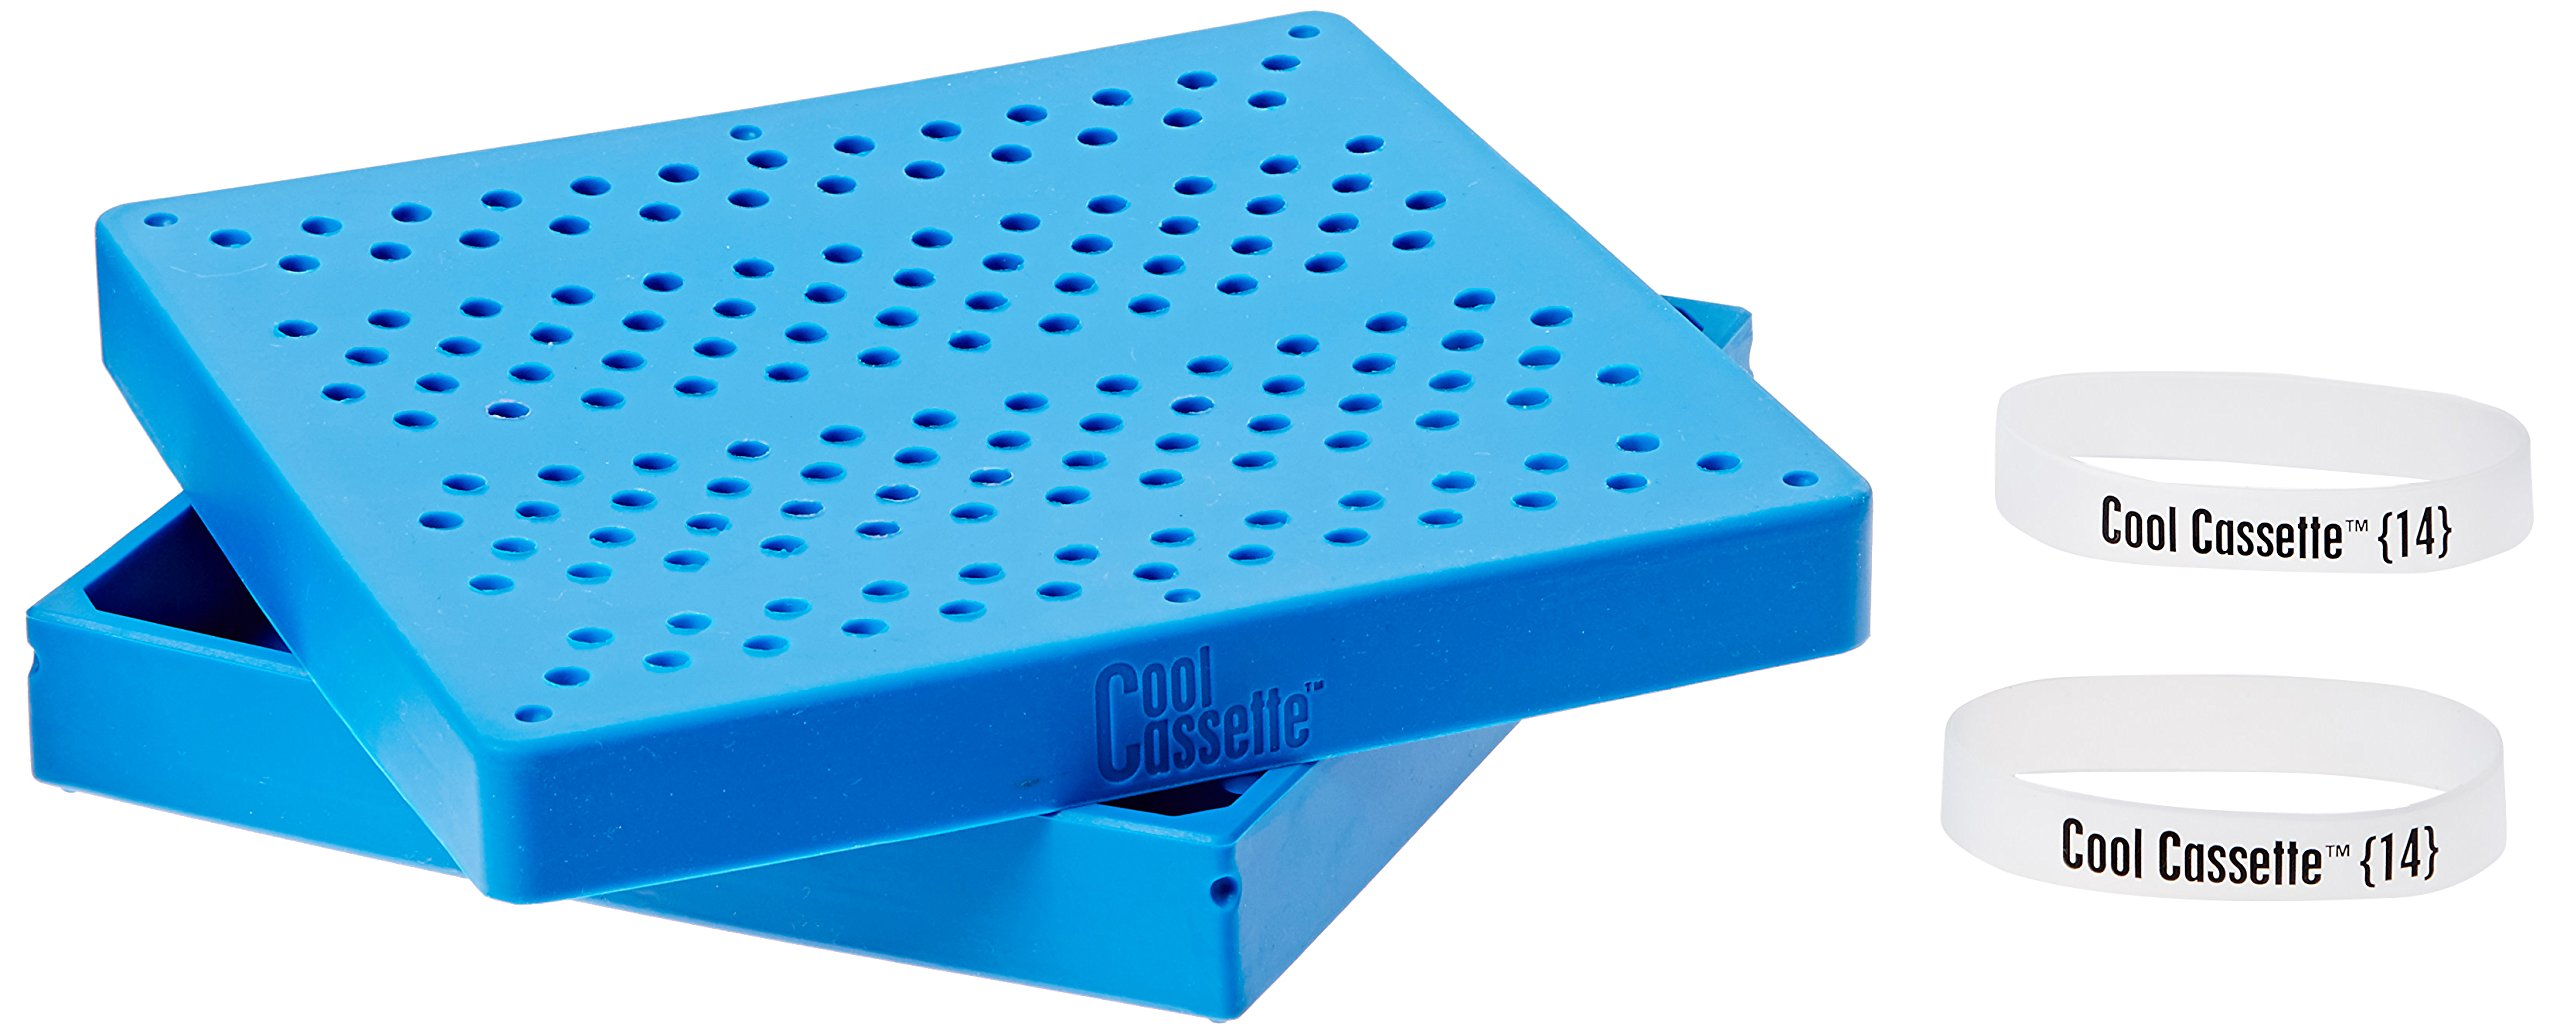 Practicon 7039772 BLU Cool Cassette 14 Instrument Container, Blue